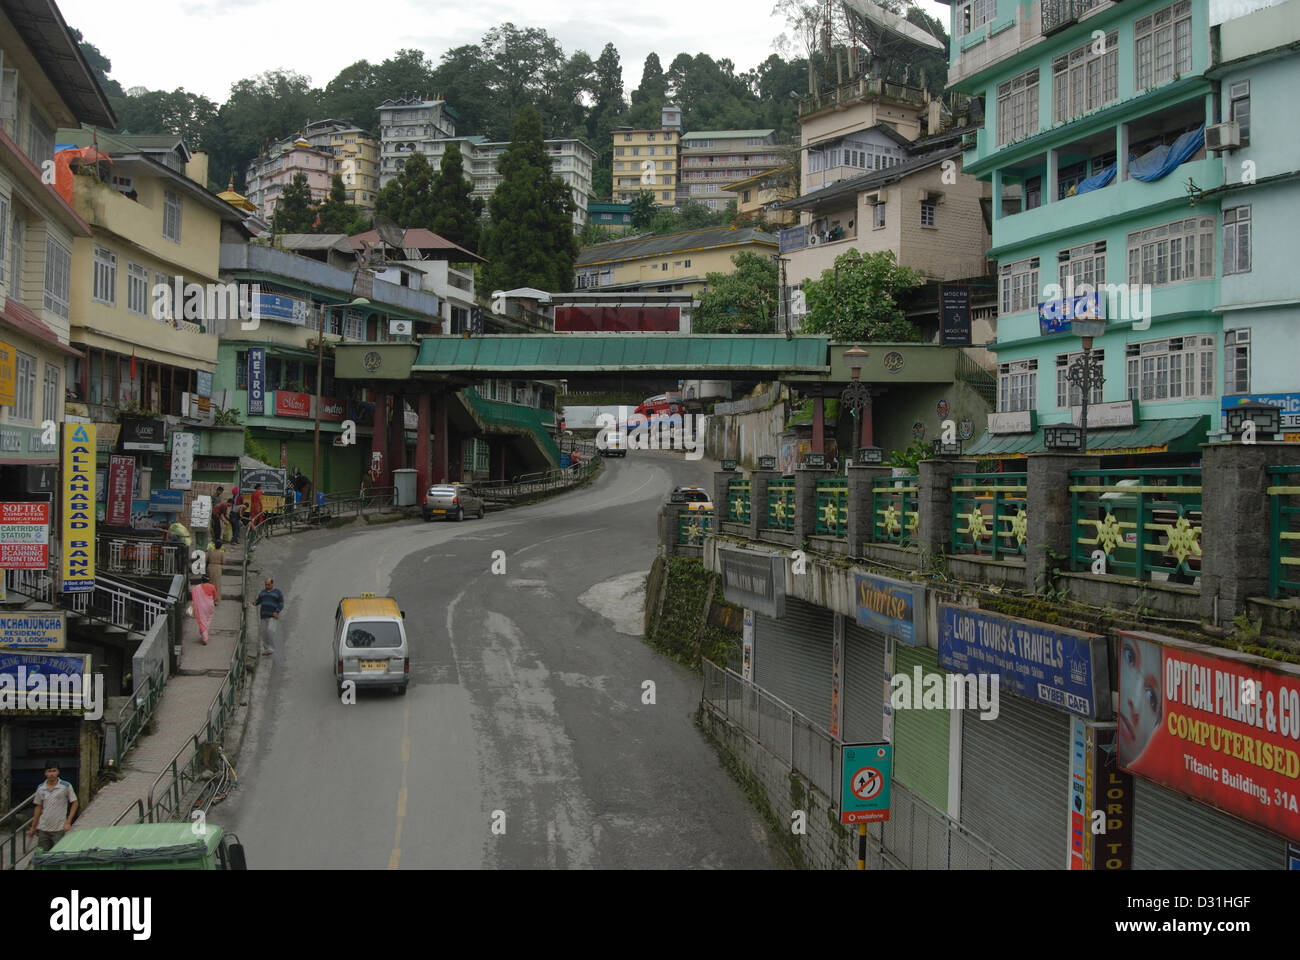 General-View of the Mall road, showing houses and shops which is the main  shopping area in Gangtok (Sikkim), during - Stock Image